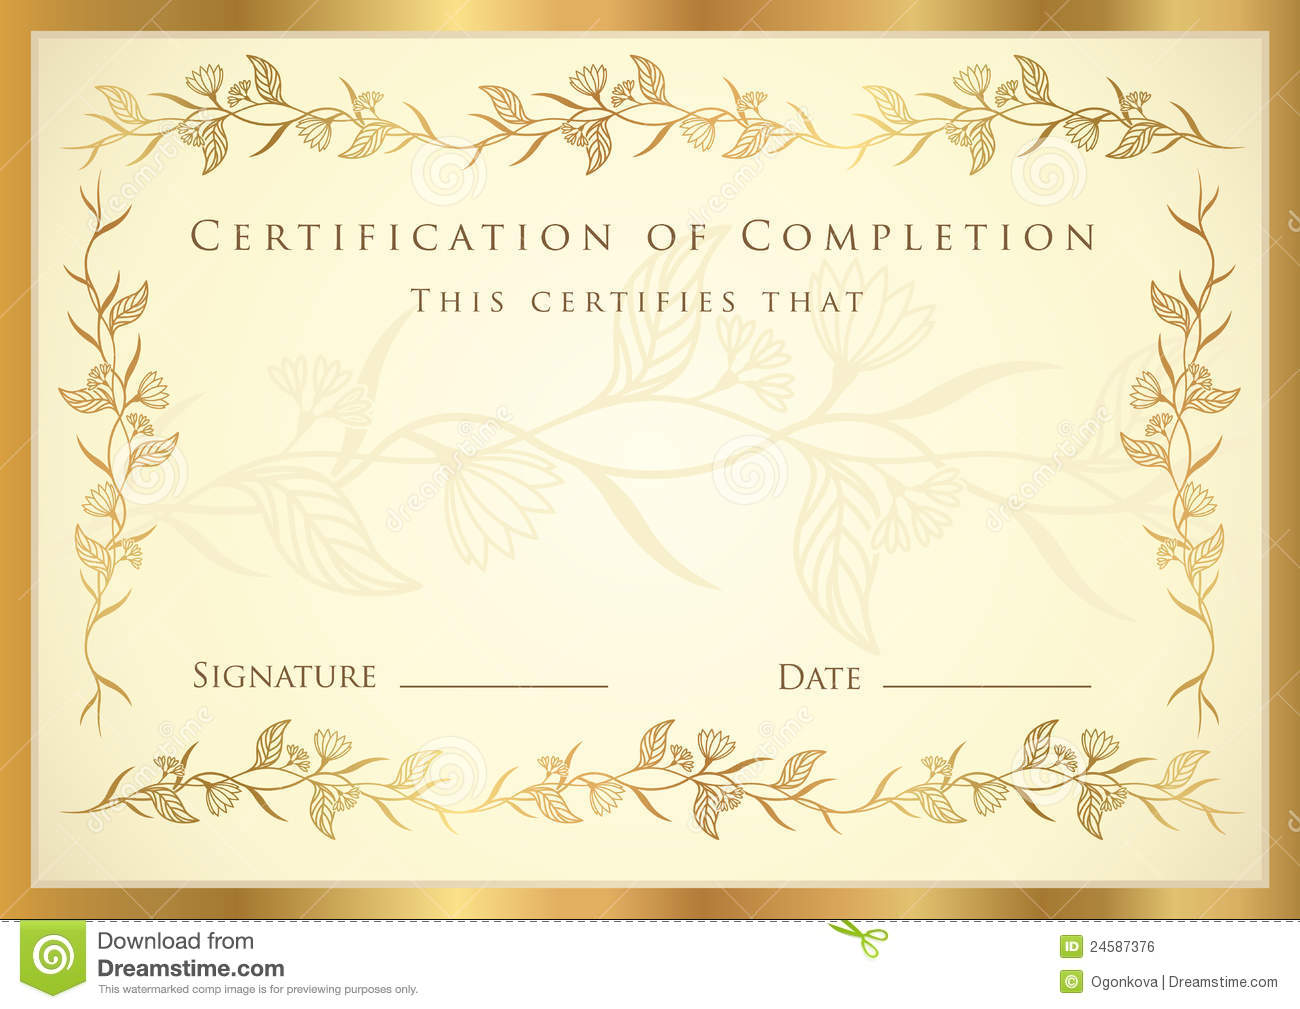 Doc27502125 Certificate of Achievement Templates Free Download – Certificates Free Download Free Printable